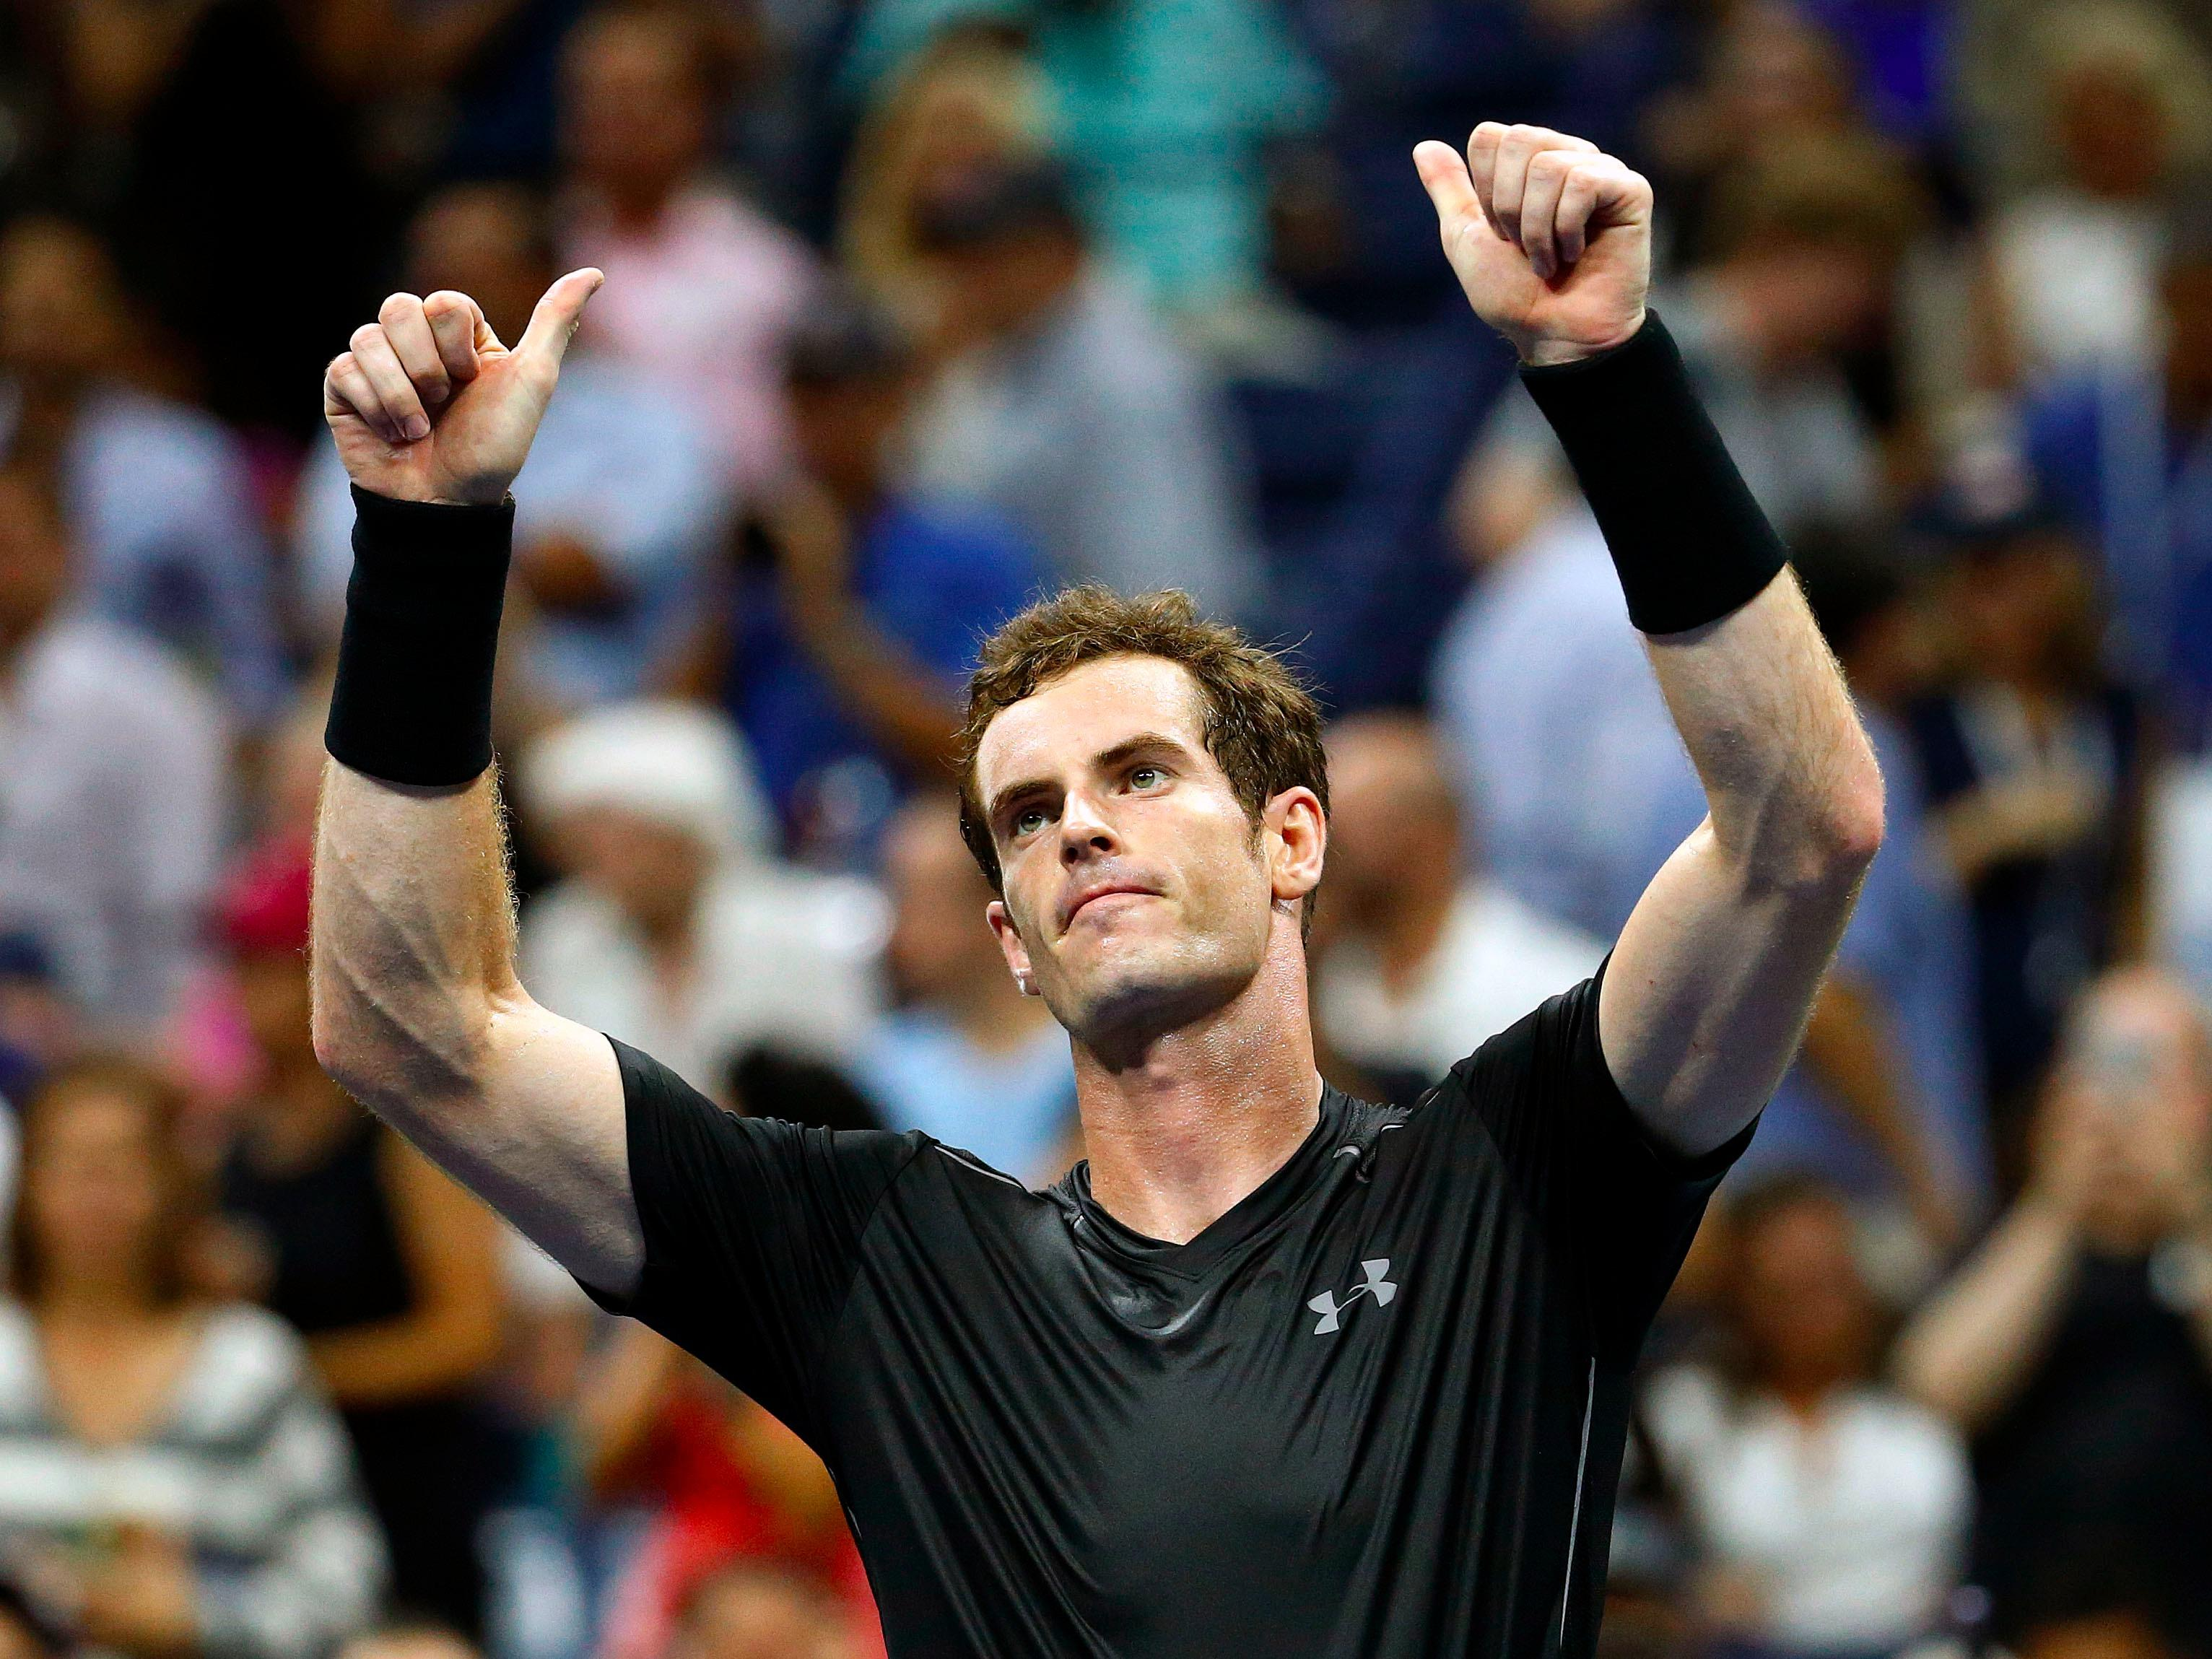 Tennis star Andy Murray just dealt a major blow to Under Armour